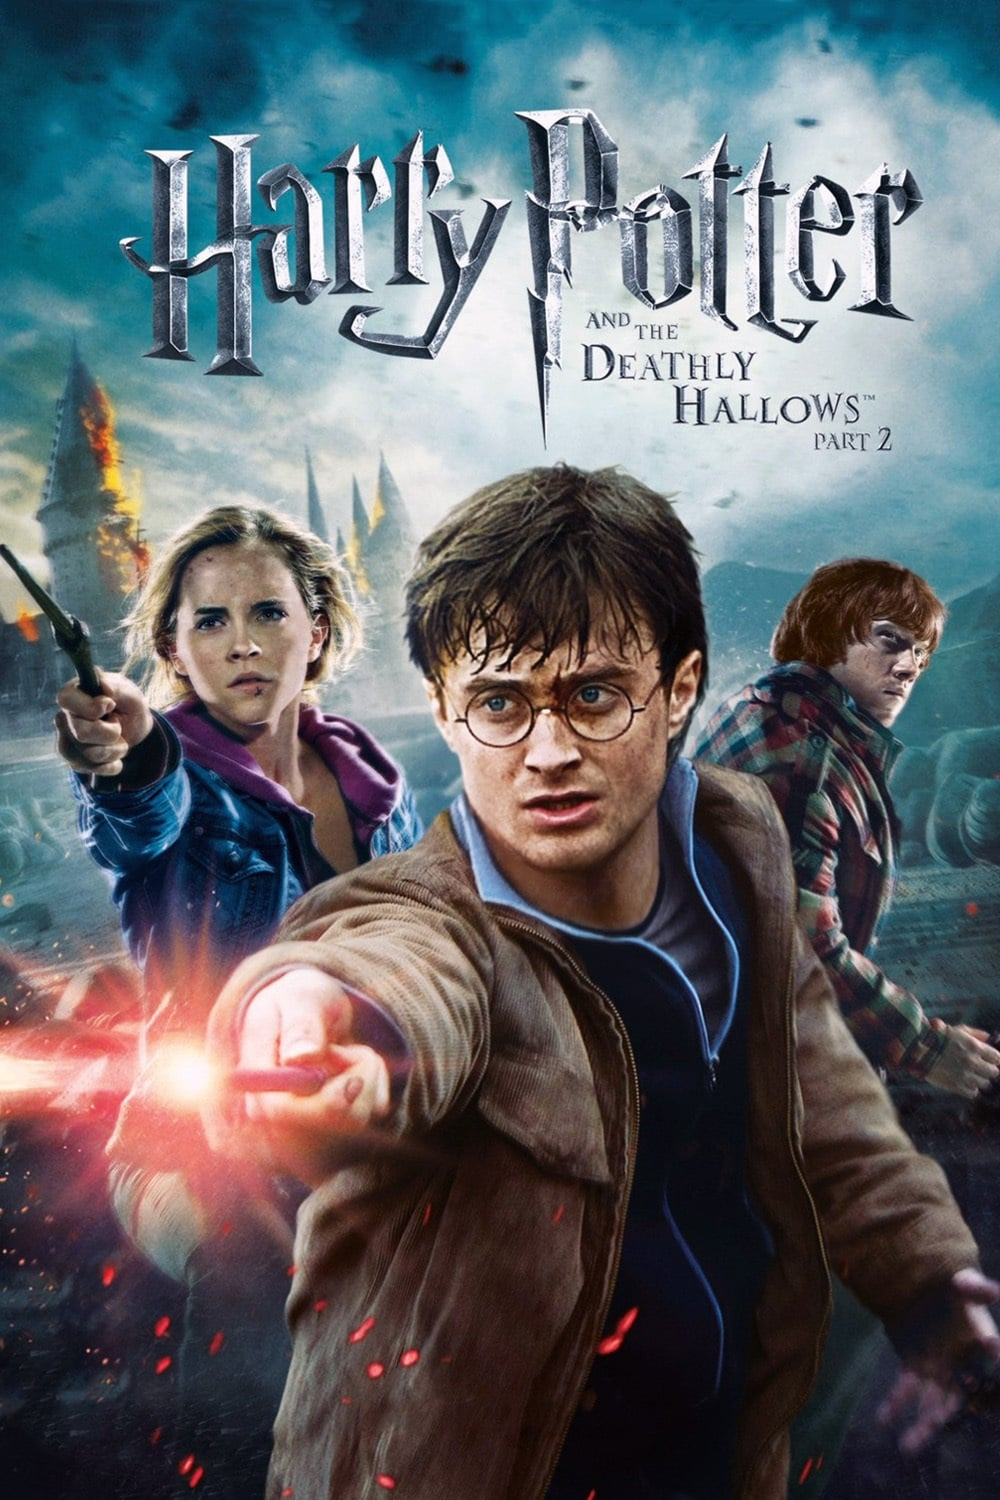 Harry Potter Deathly Hallows Part 2 DVD